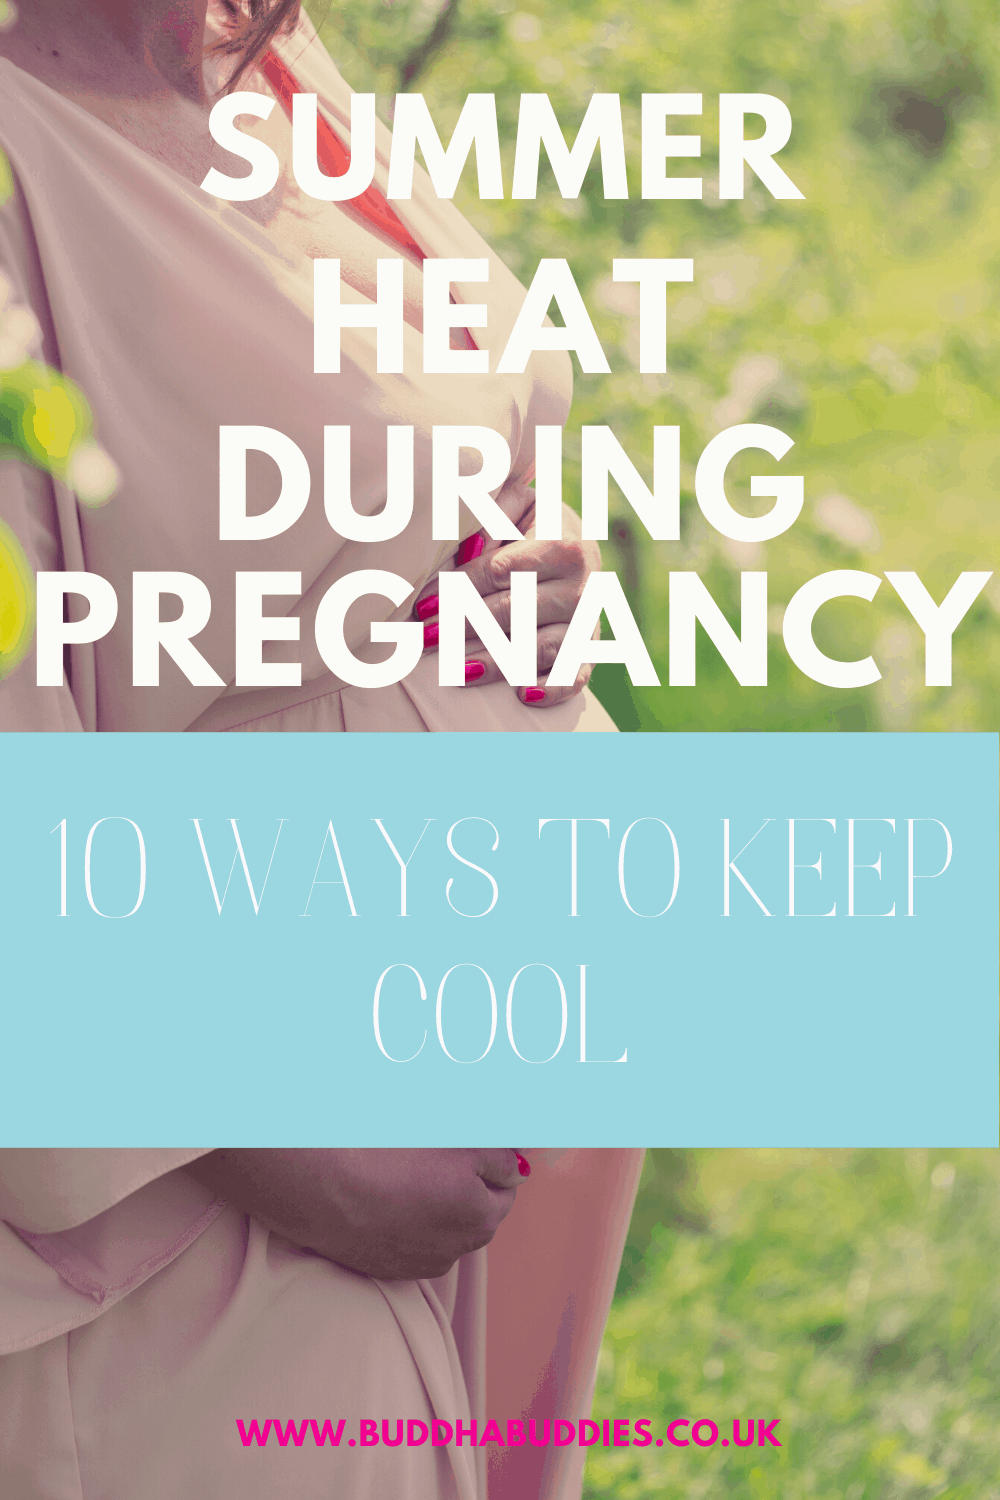 How to Keep Cool During Pregnancy